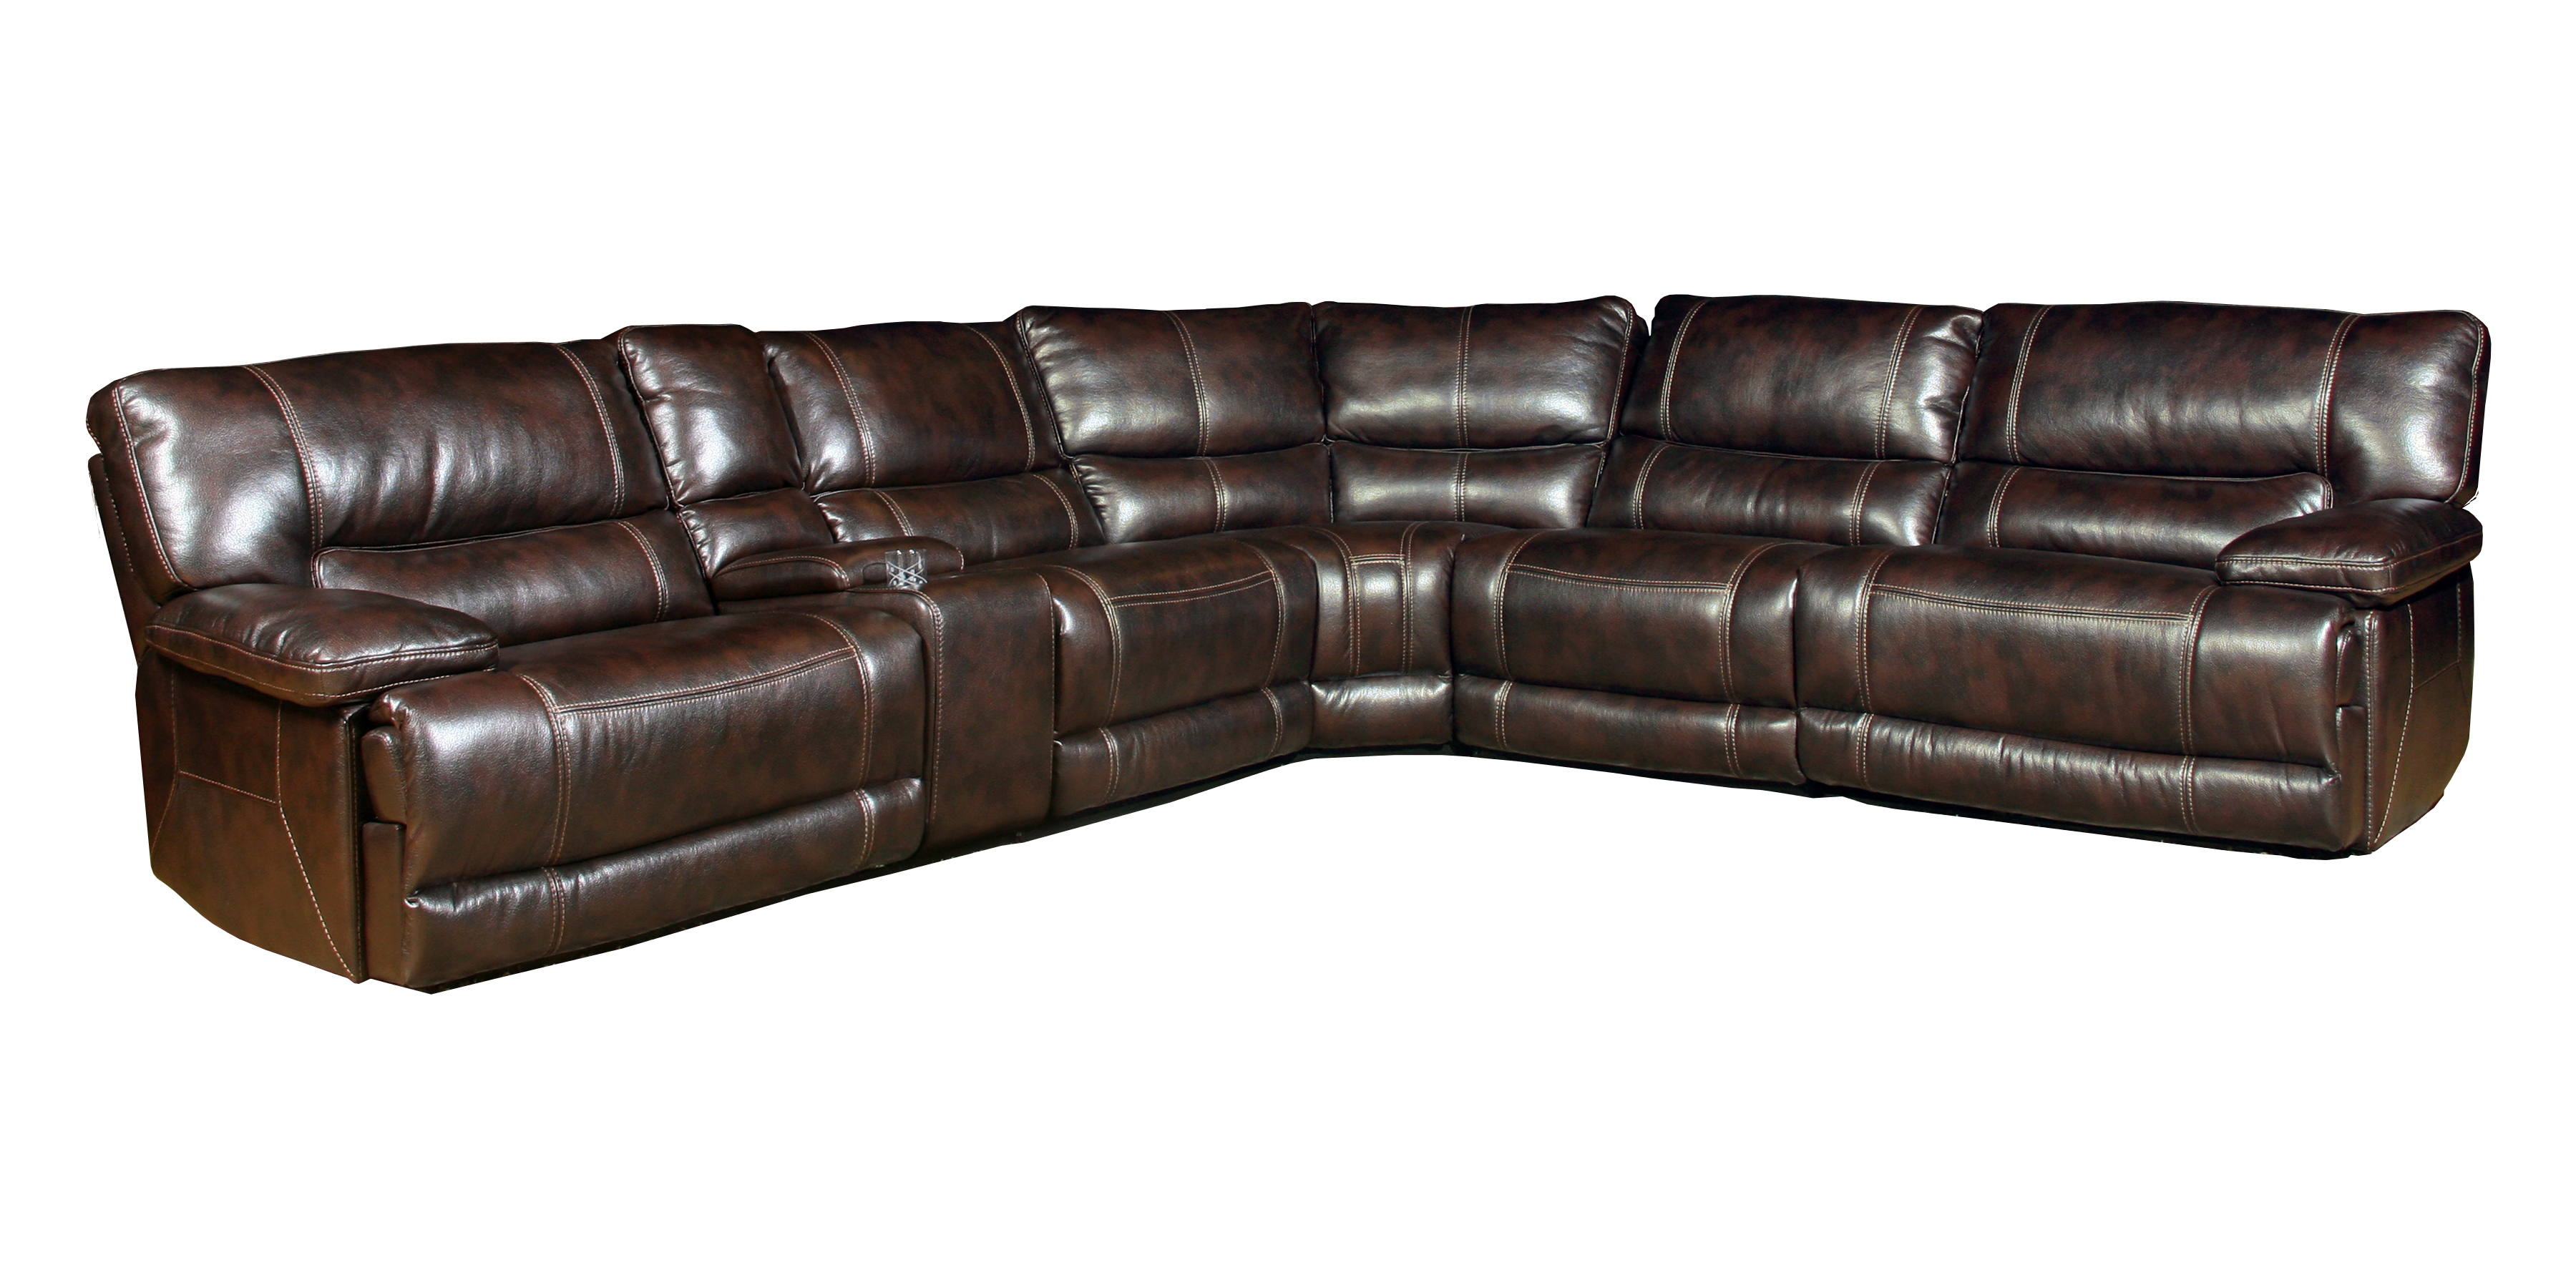 Mayo Leather Sofa Reviews Hereo Sofa